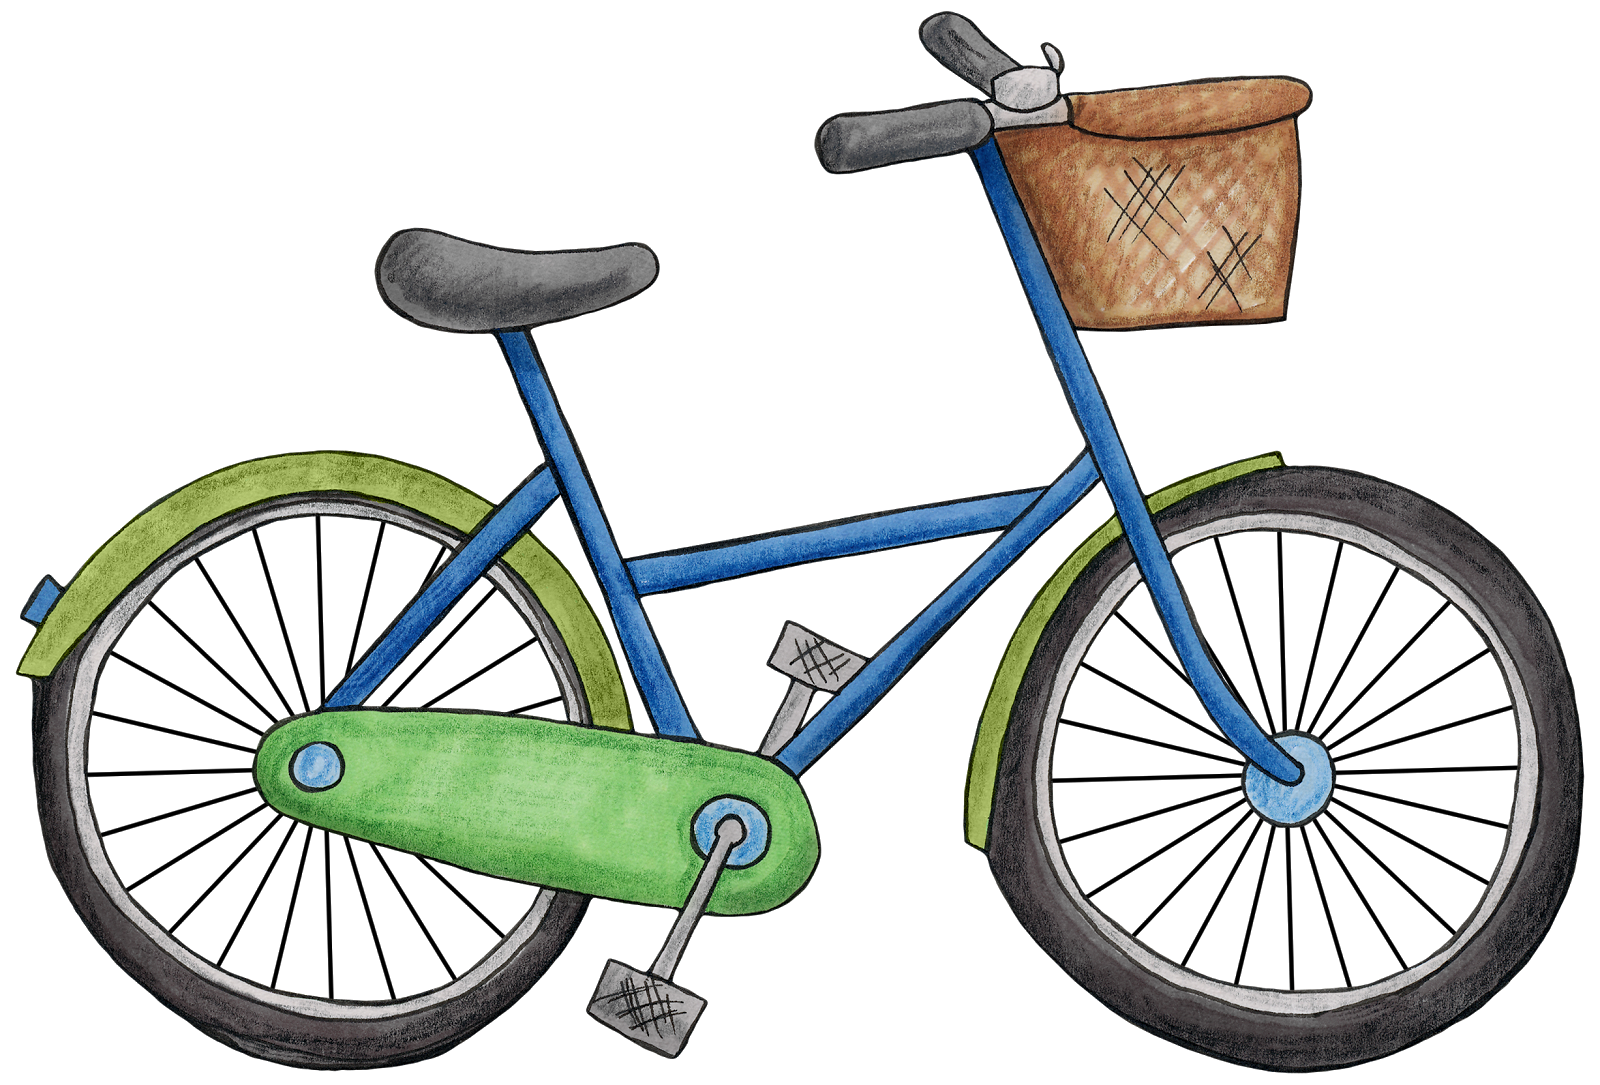 Bicycles, bike Clipart images free download pictures #45181.